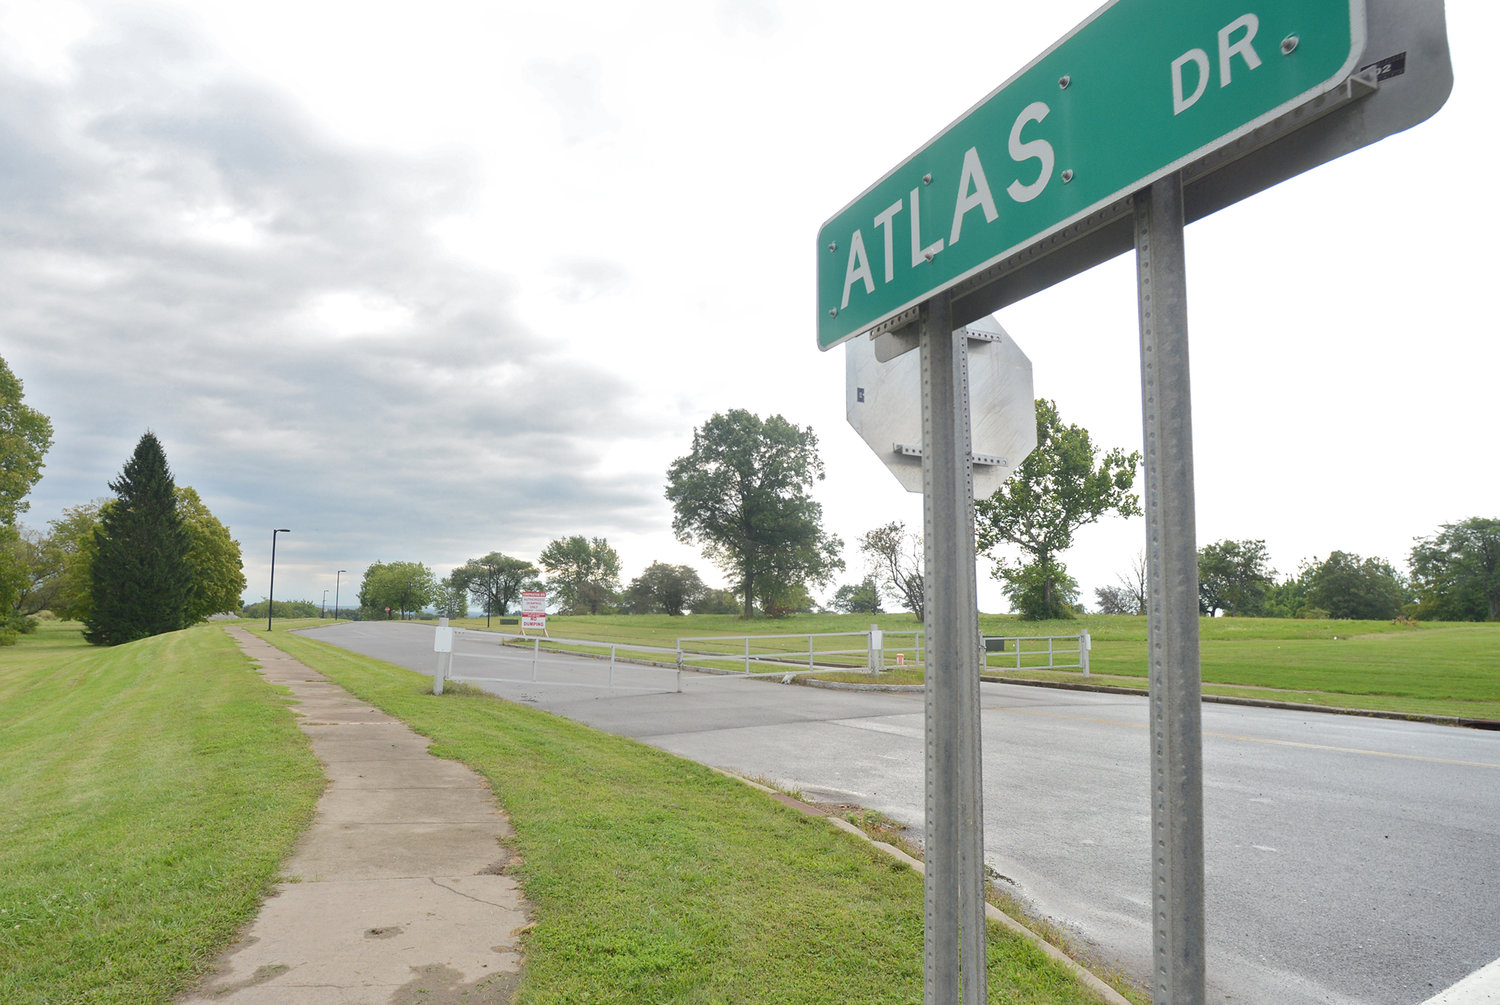 AT THE BEGINNING — A street sign marks the Atlas Drive intersection with Route 825 on the Griffiss Business and Technology Park. In the distance is a locked gate and construction site sign, heralding the proposed constructive of a massive new distribution center.